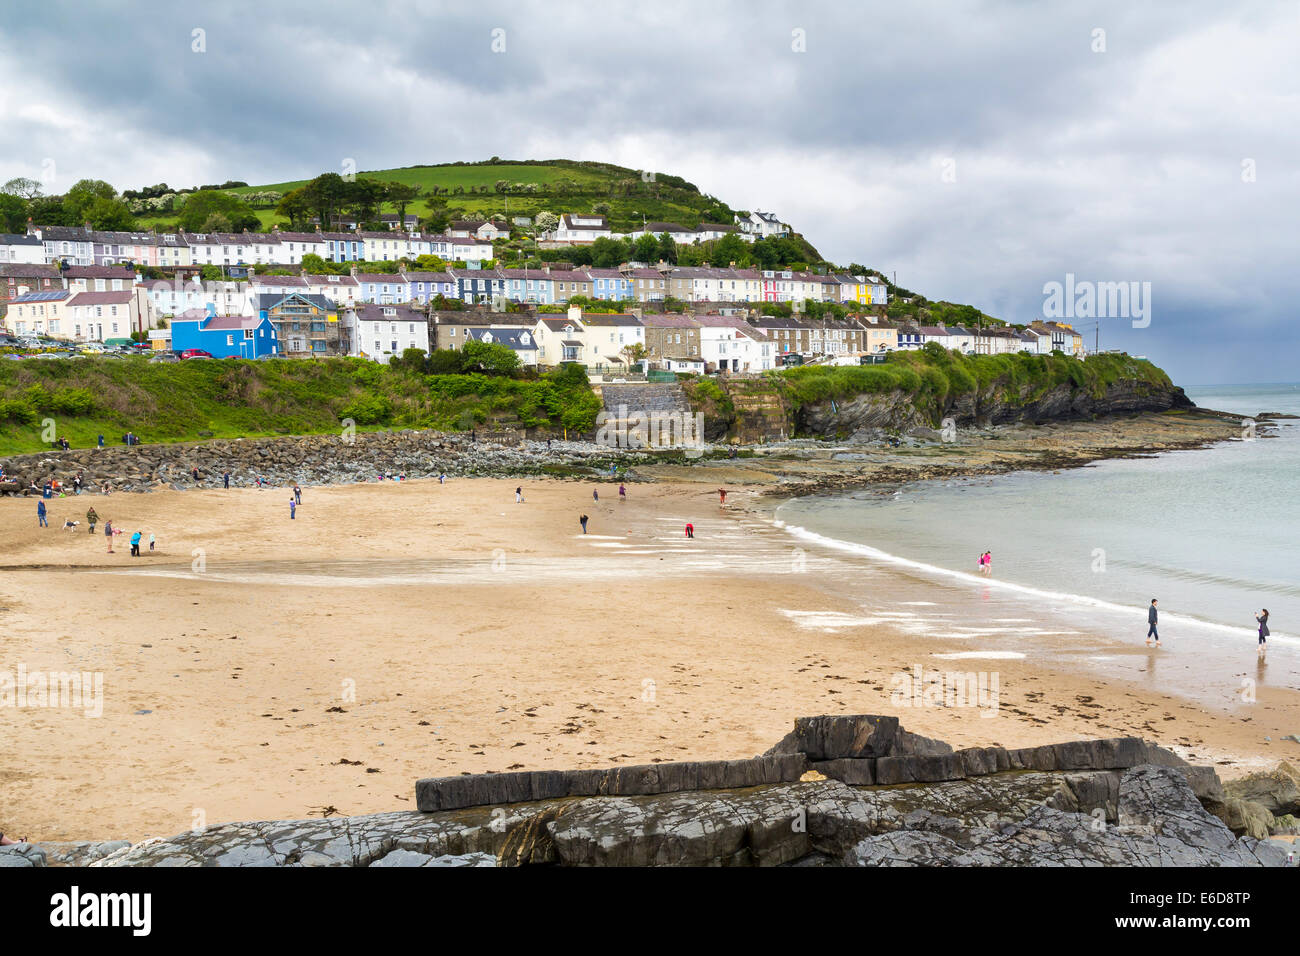 Overlooking the beach at New Quay Wales UK Europe - Stock Image